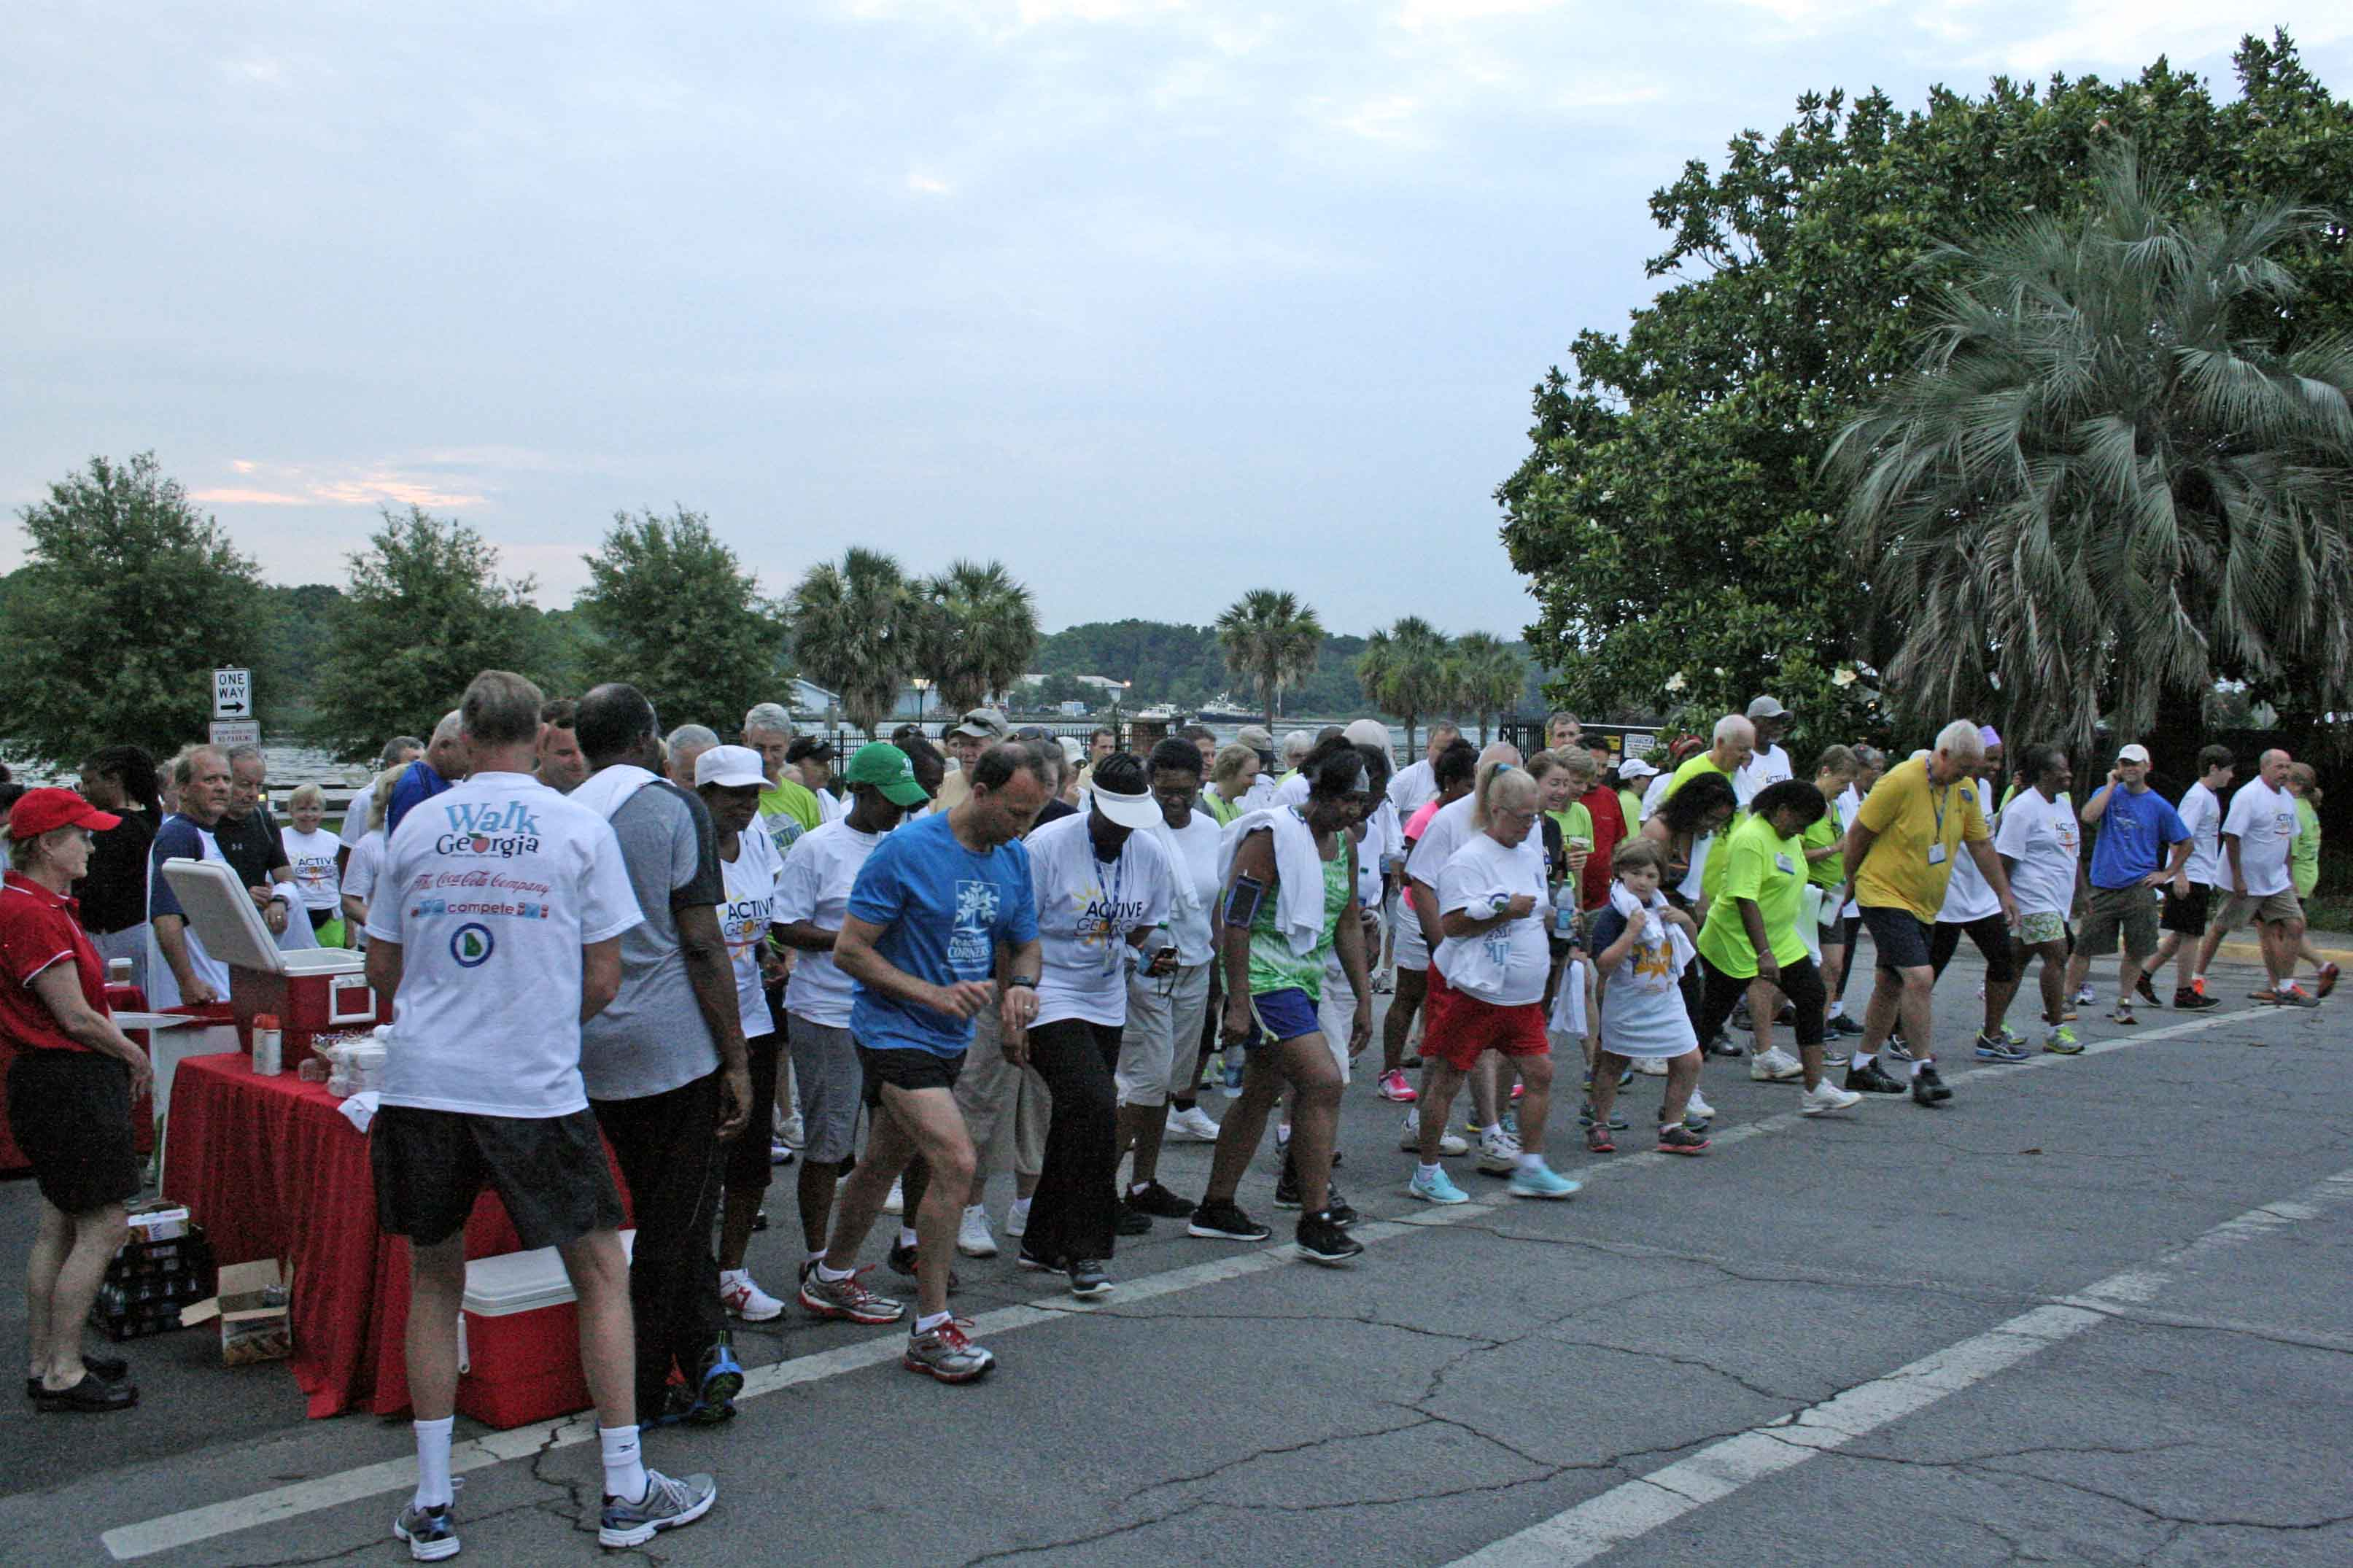 The Georgia Municipal Association's Active Georgia Walk begins on Savannah's River Street early Monday morning, June 23.